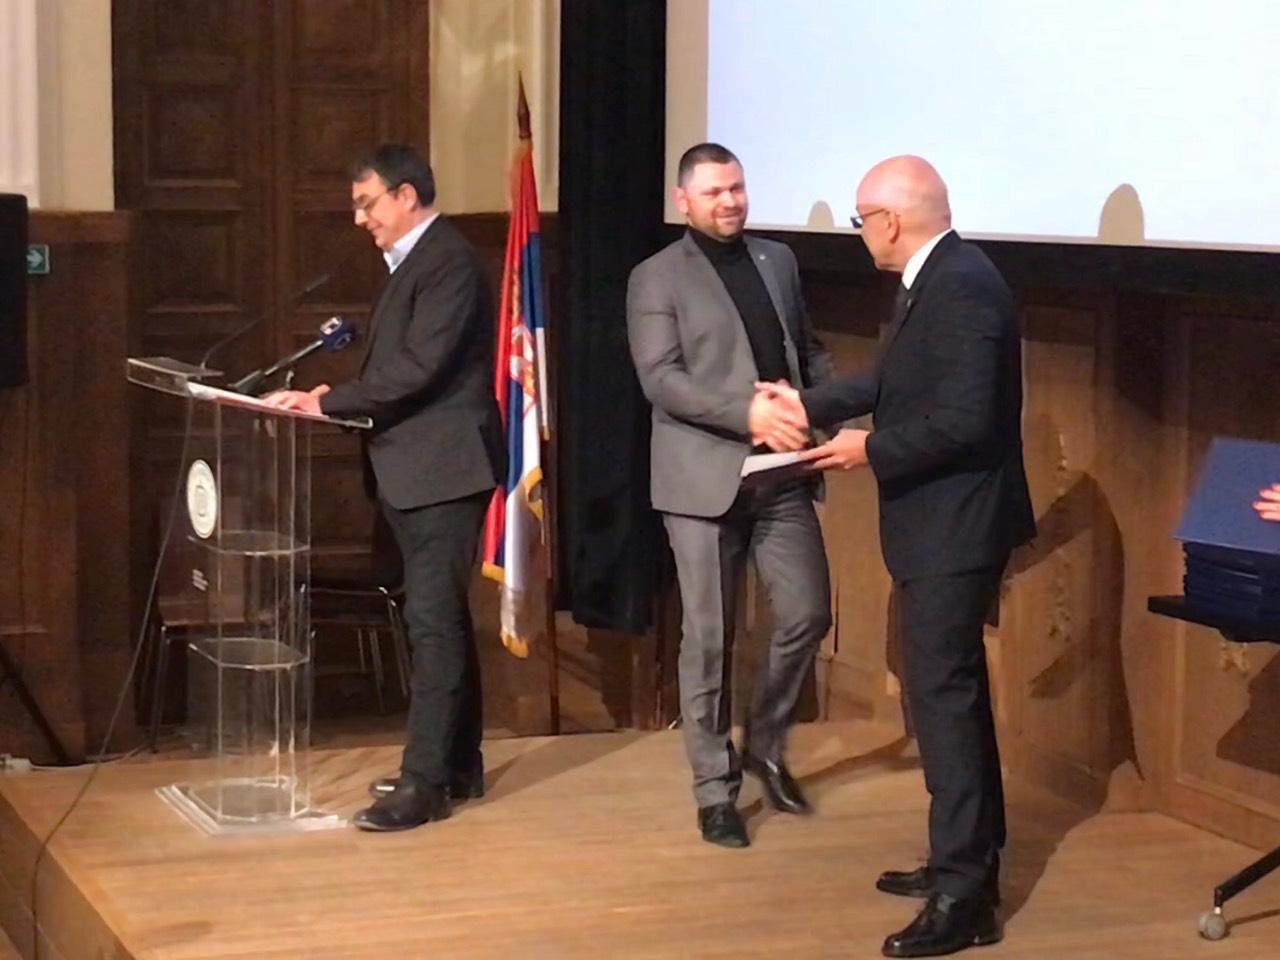 Award ceremony by the Minister of Culture